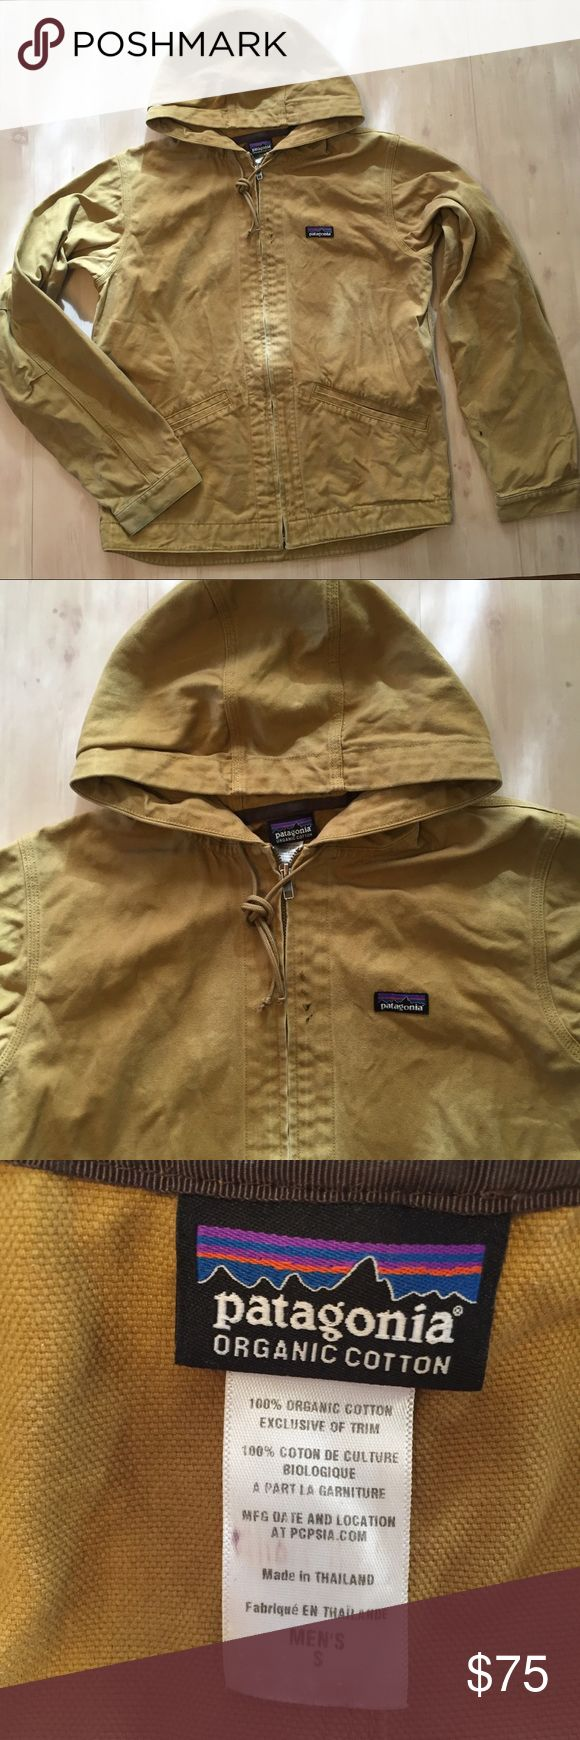 Patagonia Organic Cotton men jacket hooded zip up Patagonia organic cotton mens jacket hoodie  zip up logo lightweight khaki twill Sz Small . Great street wear work wear uniform coat . Easy movement arms. See pics has minor flaws that add character? Artist paint on the sleeves ,price reflects paint . See pics for condition. I took $25 off if my original comp due to  paint 🎨 Patagonia Jackets & Coats Lightweight & Shirt Jackets